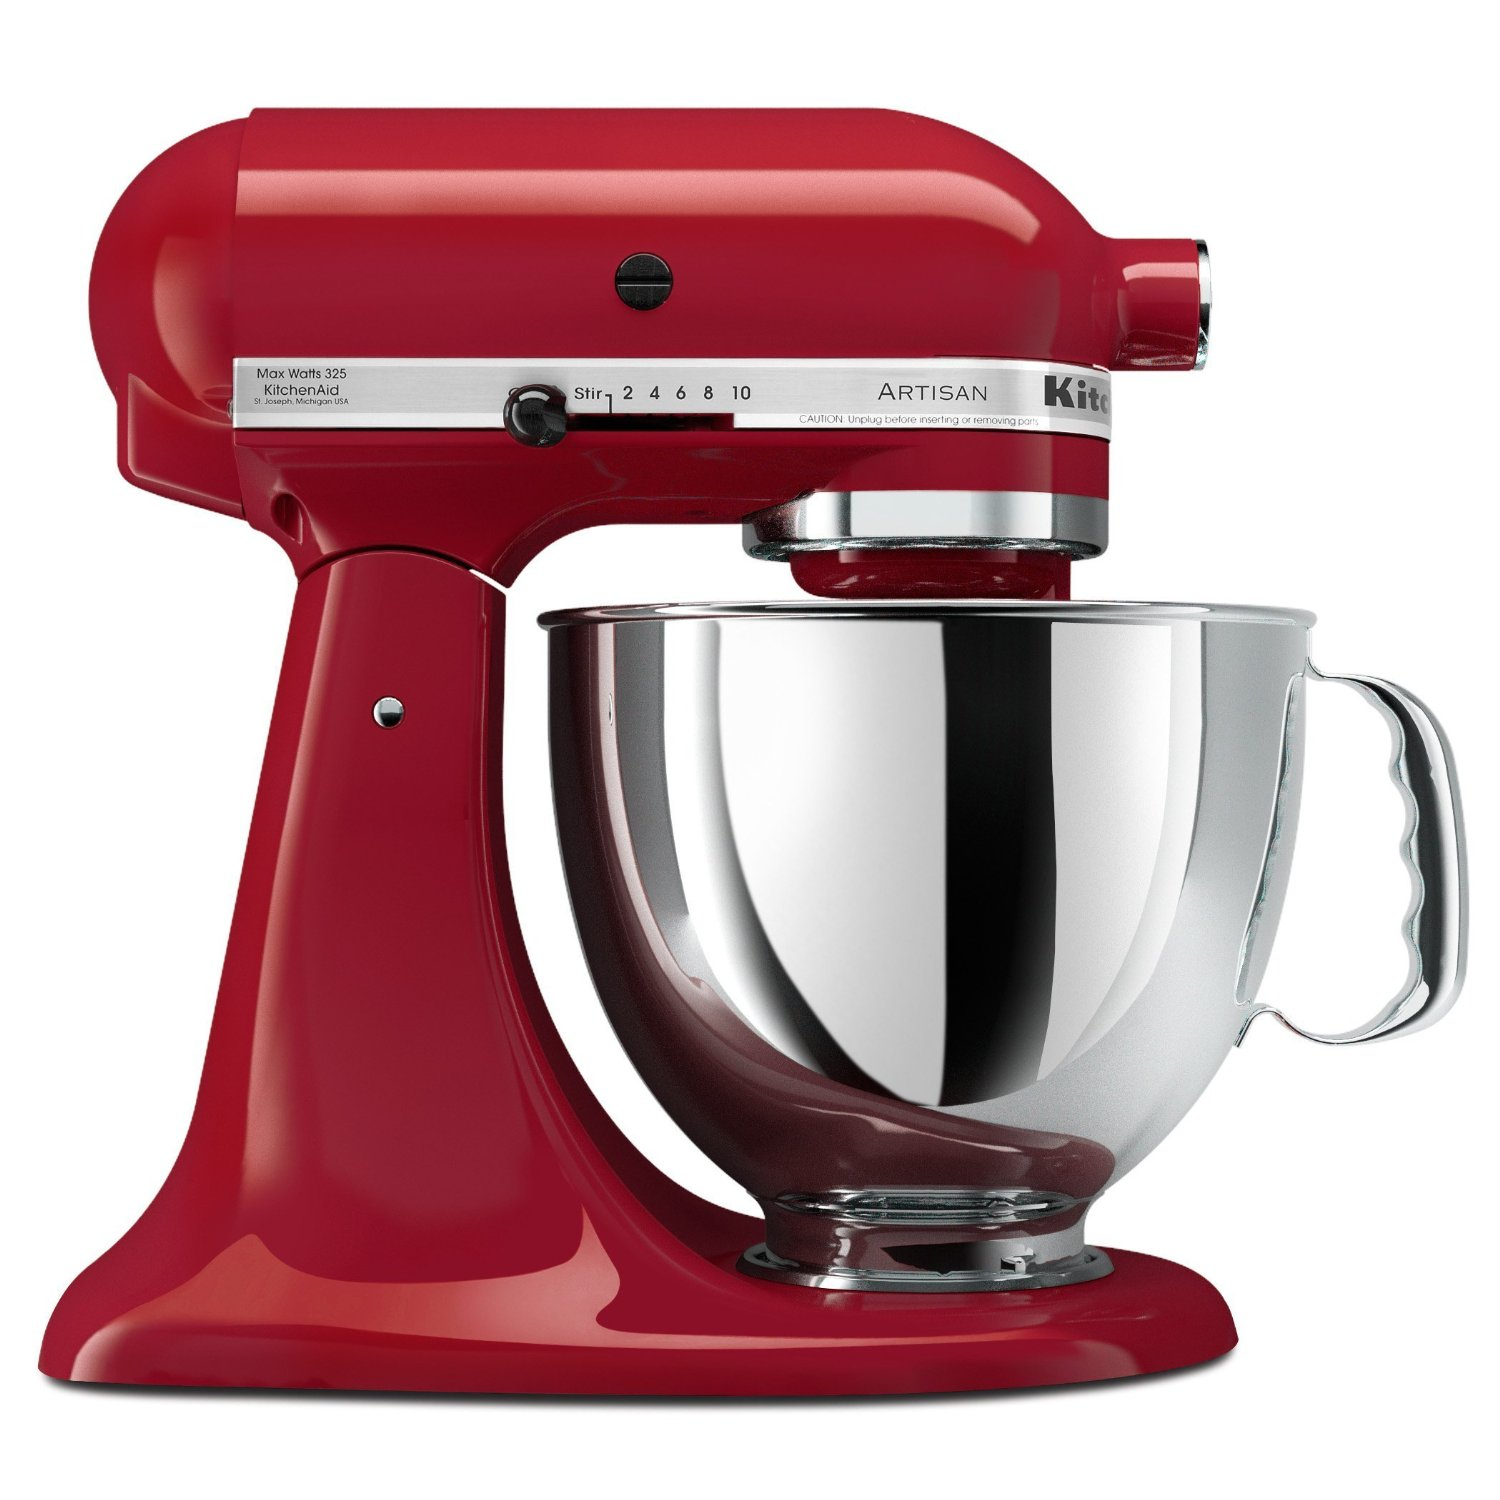 Kitchenmaid mixer photo - 1